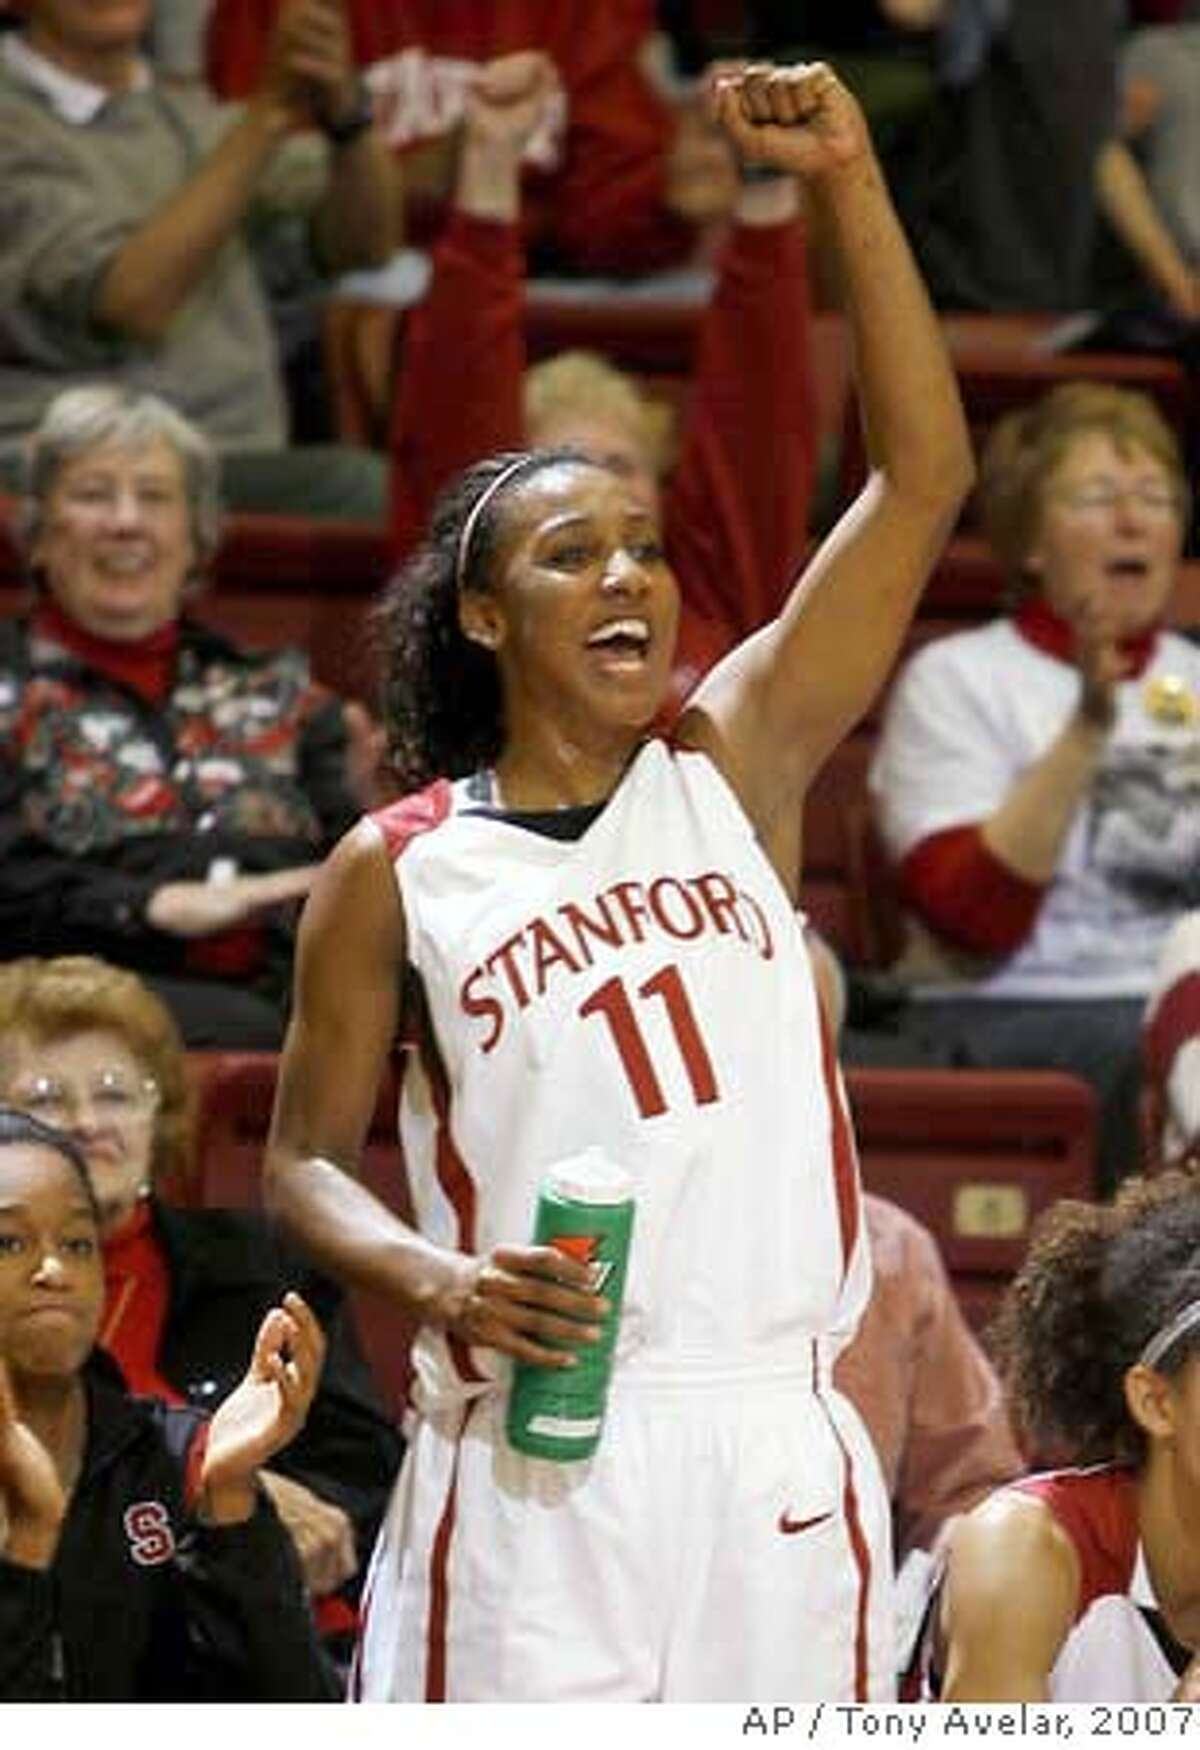 Stanford guard Candice Wiggins (11) celebrates after beating Baylor 87-63 during an NCAA basketball game in Stanford, Calif., Sunday, Dec. 16, 2007. Wiggins had a team high 35 points in the game. (AP Photo/Tony Avelar) Ran on: 12-17-2007 Candice Wiggins fell two points shy of her career high when she scored 35 points in Stanfords win over Baylor. Ran on: 12-17-2007 Candice Wiggins fell two points shy of her career high when she scored 35 points in Stanfords win over Baylor. EFE OUT